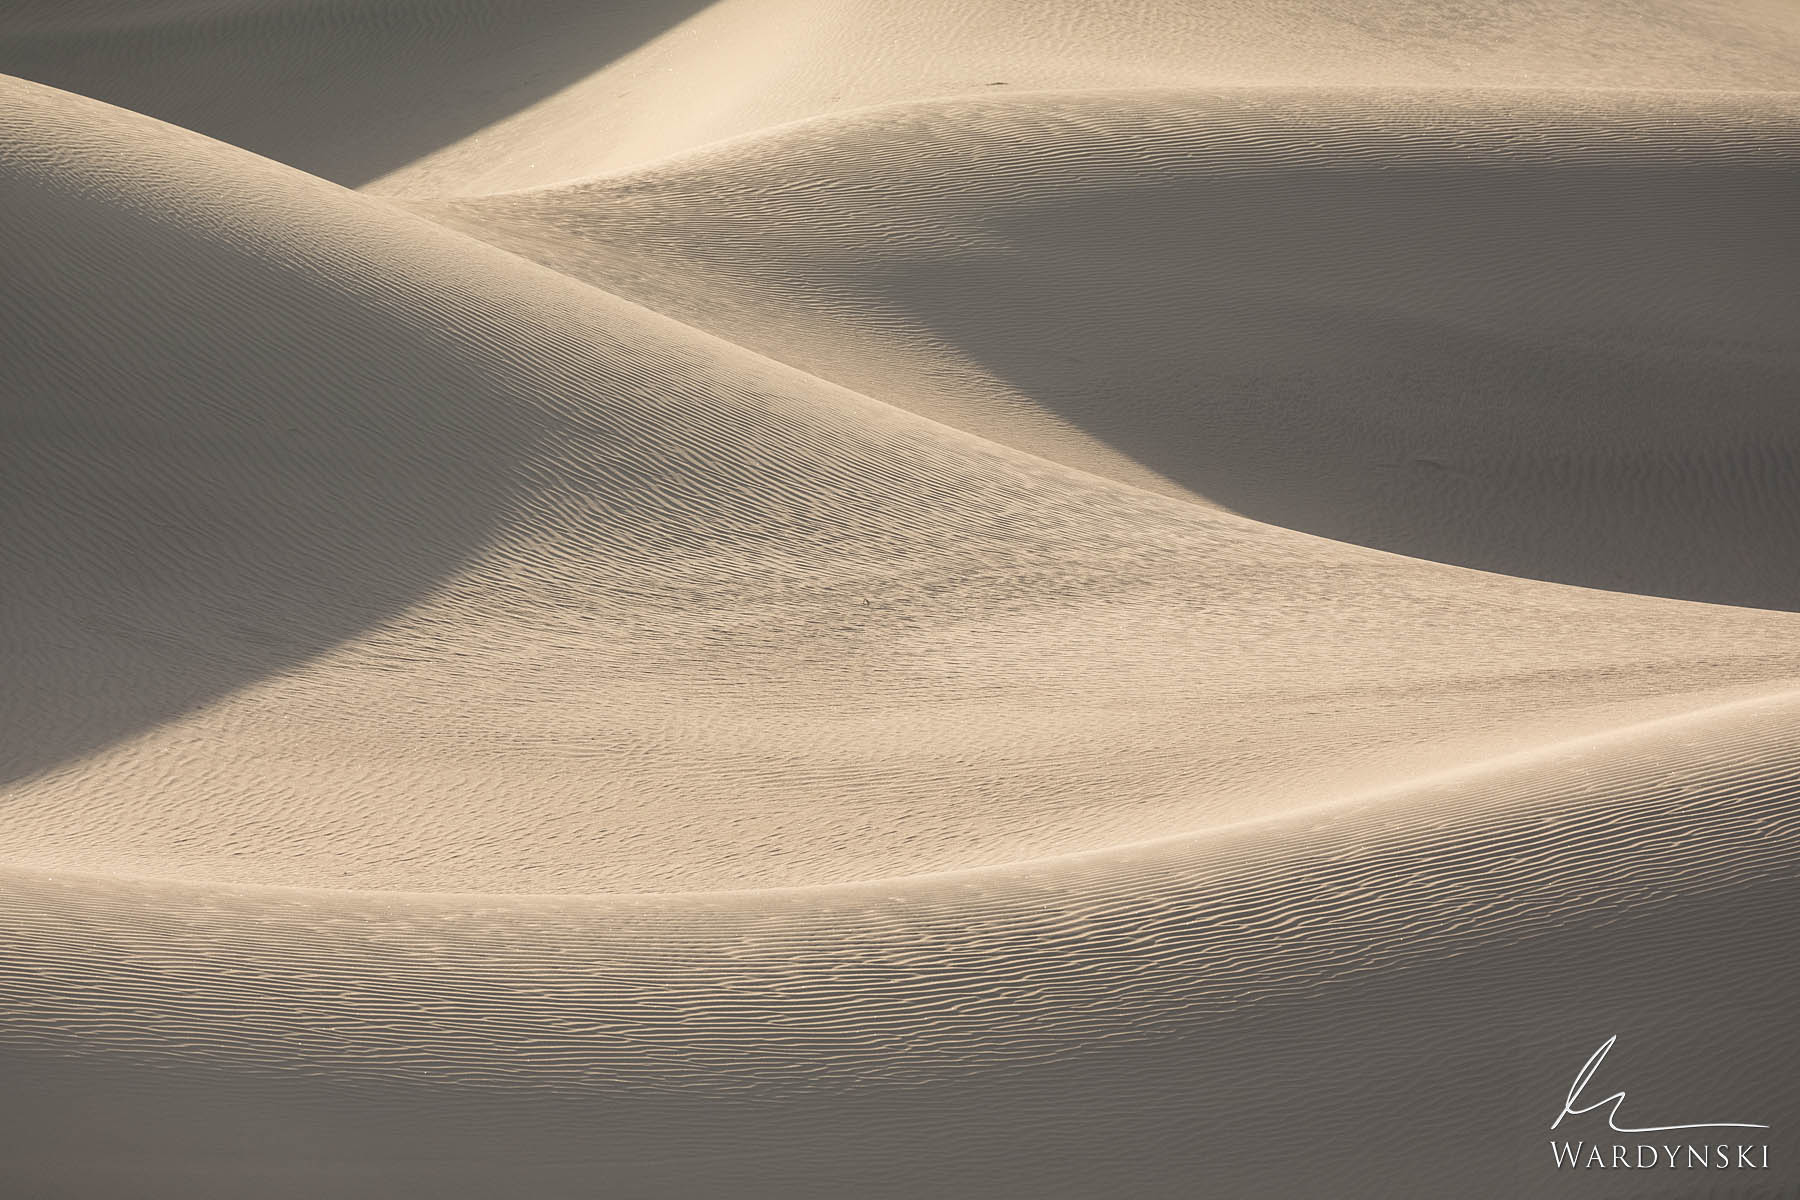 Fine Art Print | Limited Edition of 25  Morning light graces the sensual curves of Mesquite Dunes in Death Valley. The sand dunes...